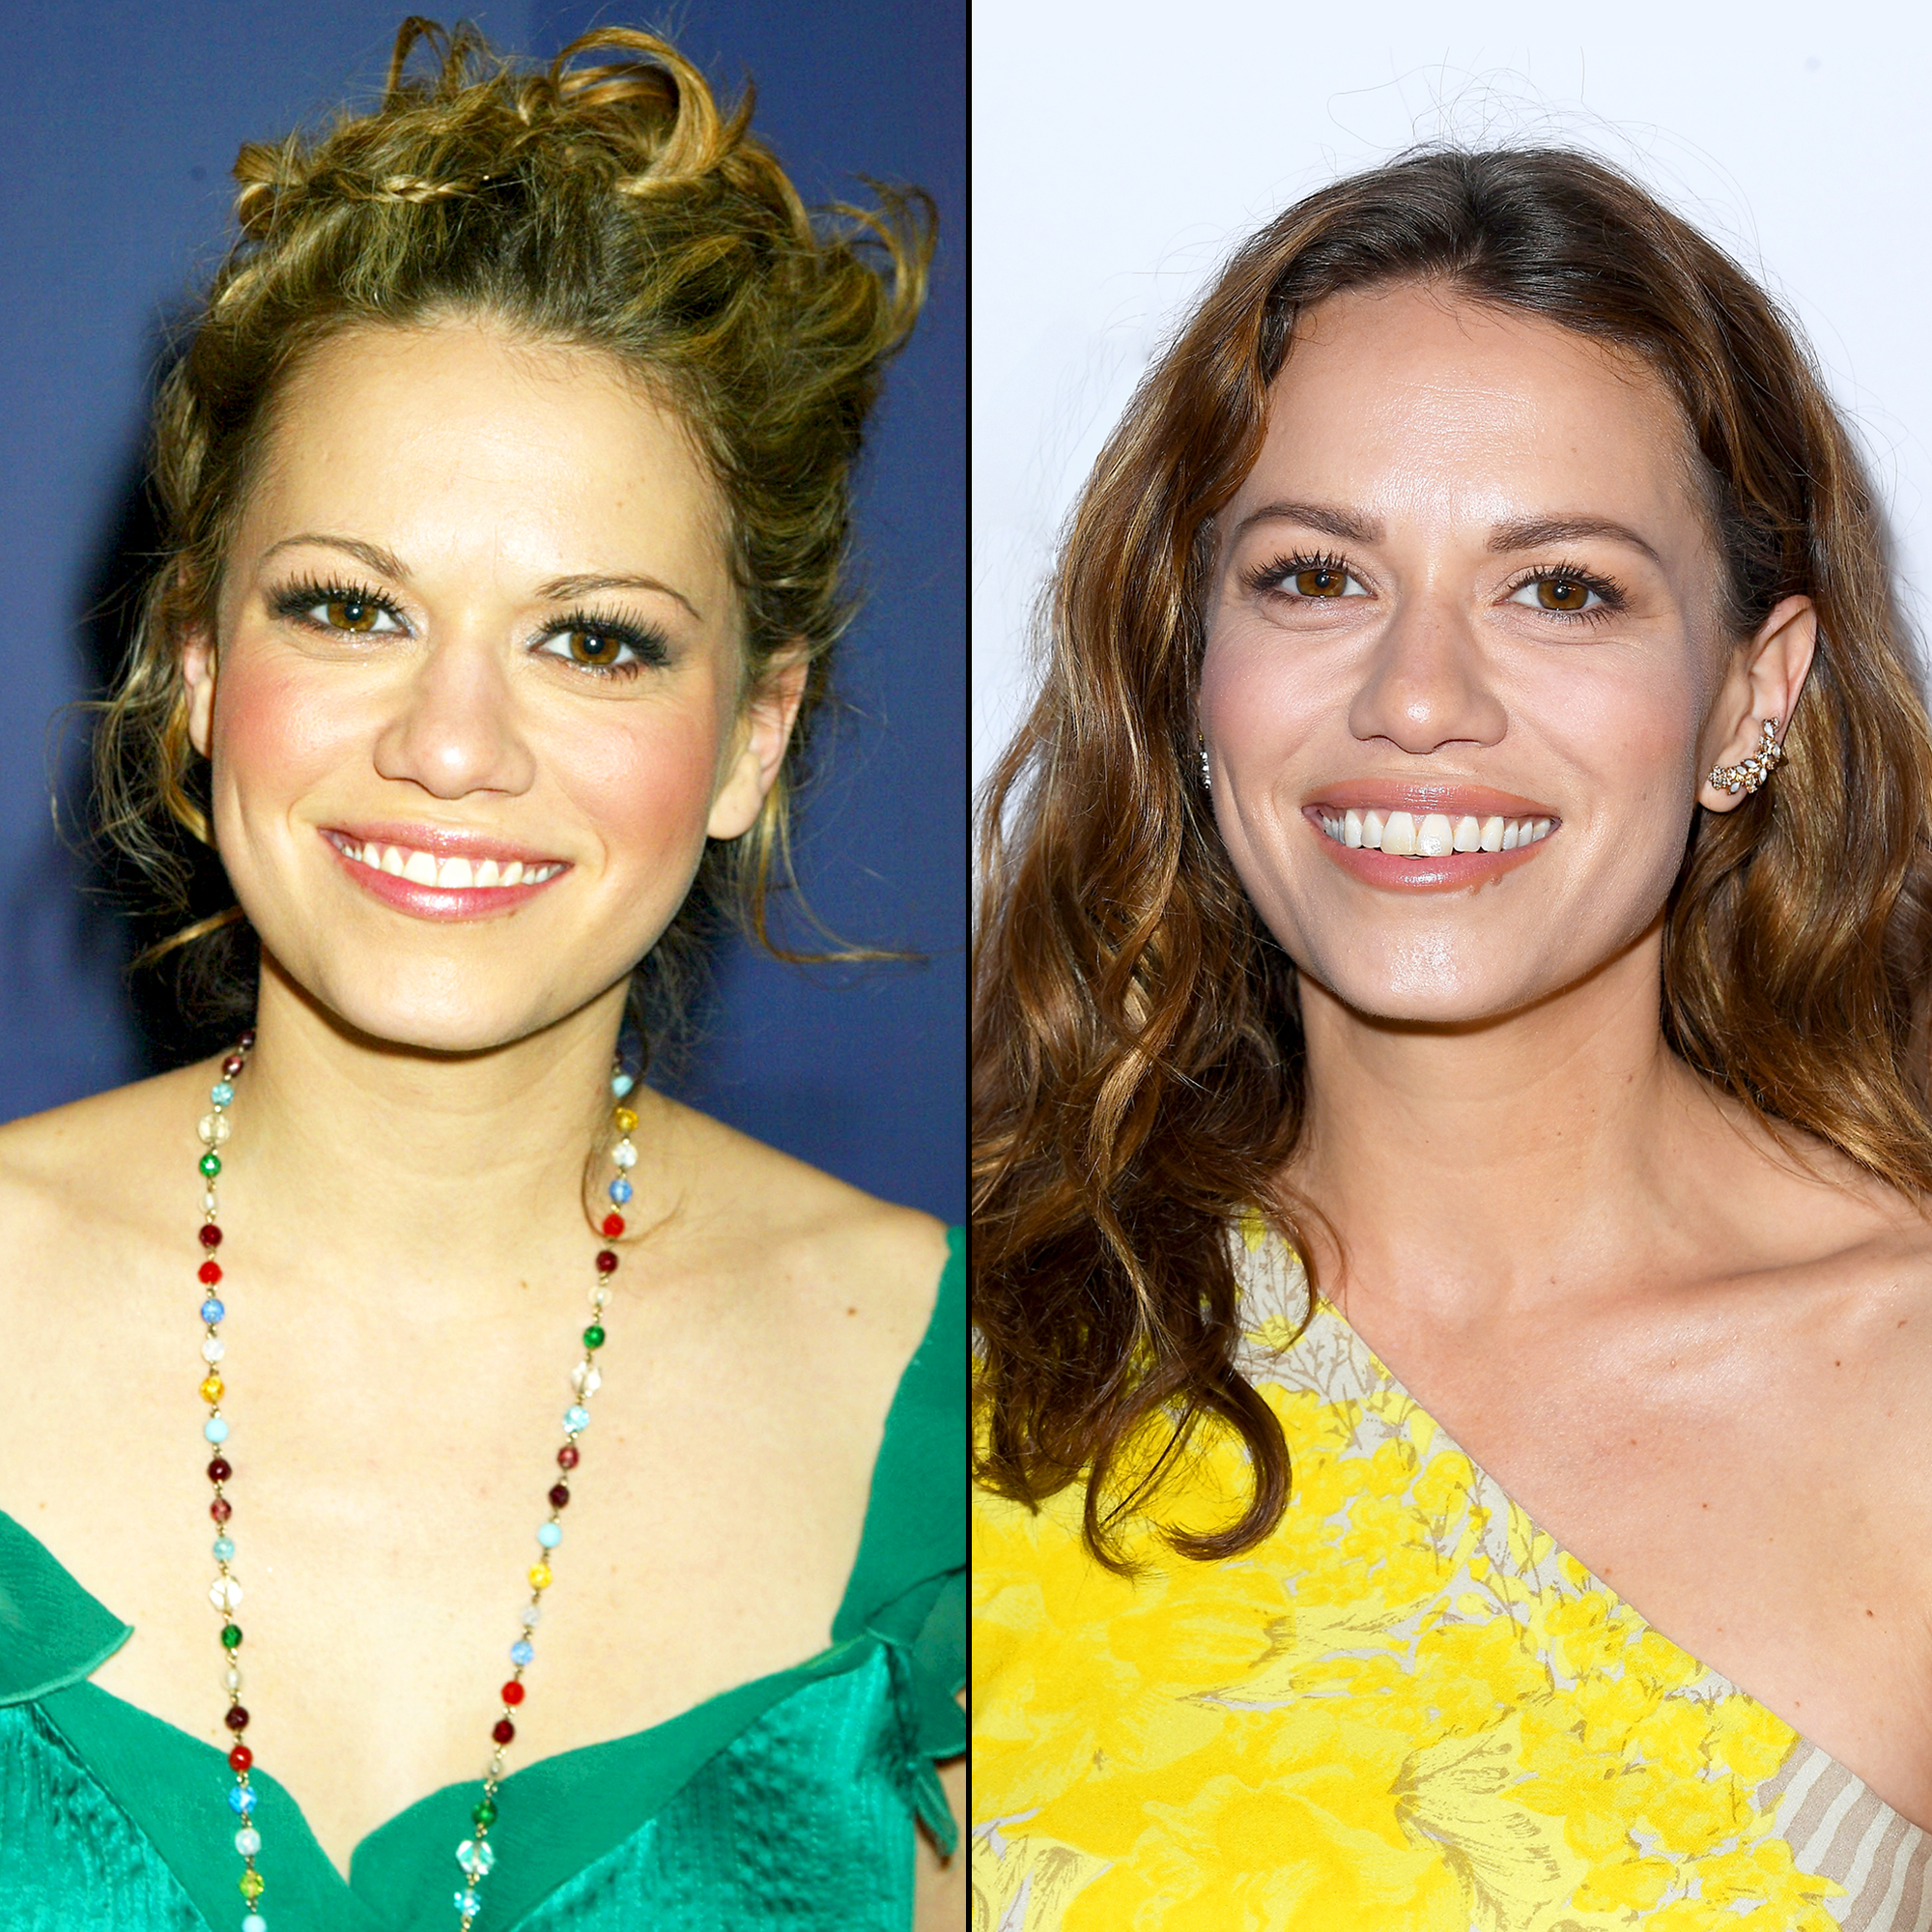 Bethany Joy Lenz One Tree Hill Cast Then and Now Gallery - Lenz's TV career kicked off when she landed a leading role on Guiding Light until 2000. After appearing briefly on Charmed and Felicity , she landed the role of Haley James (later Scott) on One Tree Hill , the nerdy girl in school who falls for the star athlete.